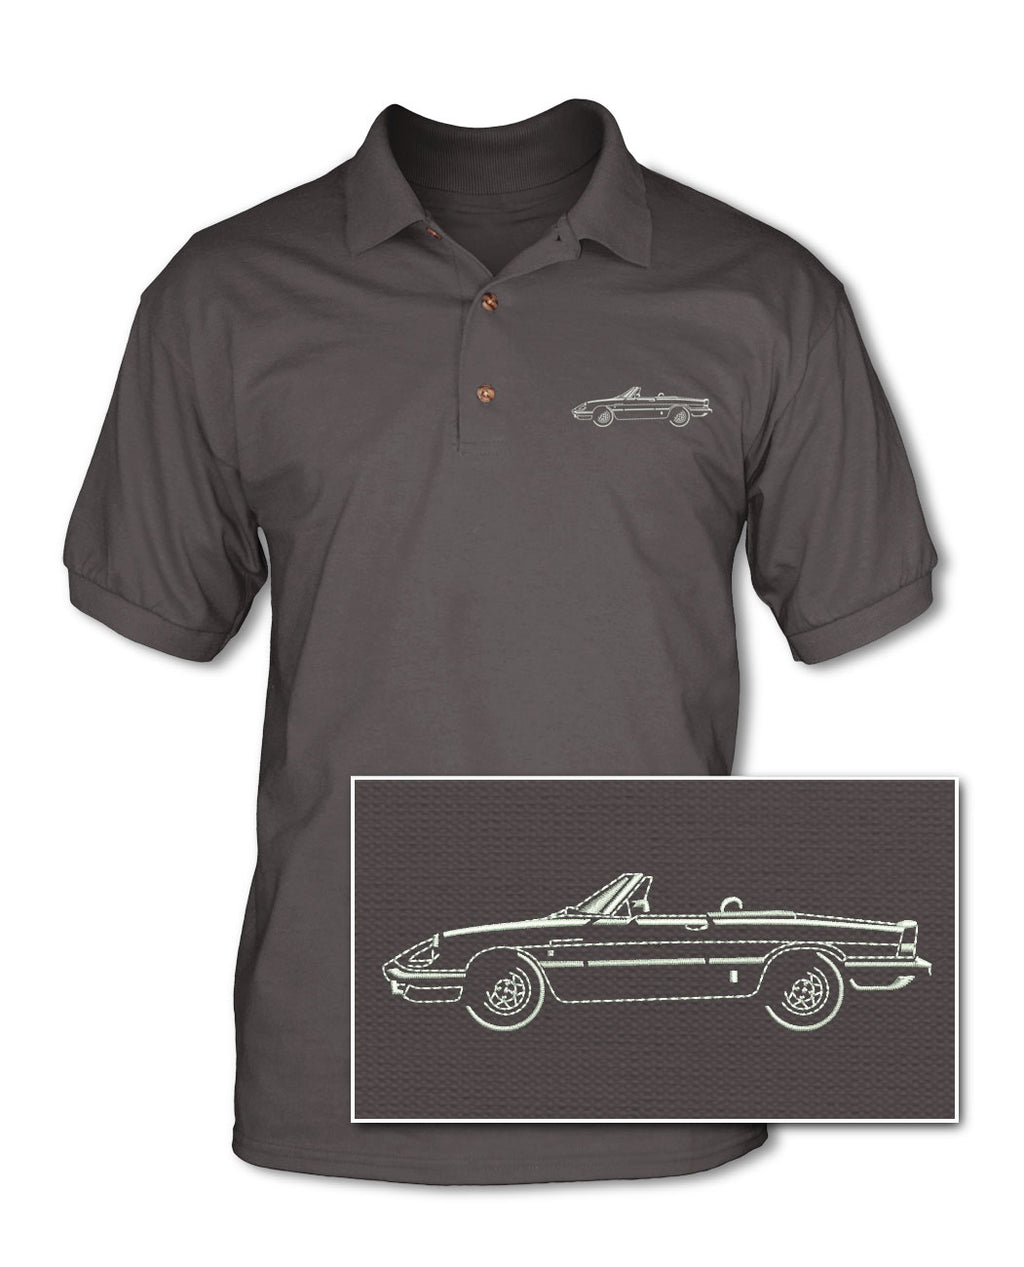 Alfa Romeo Spider Veloce Convertible Graduate 1983 - 1989 Adult Pique Polo Shirt - Side View